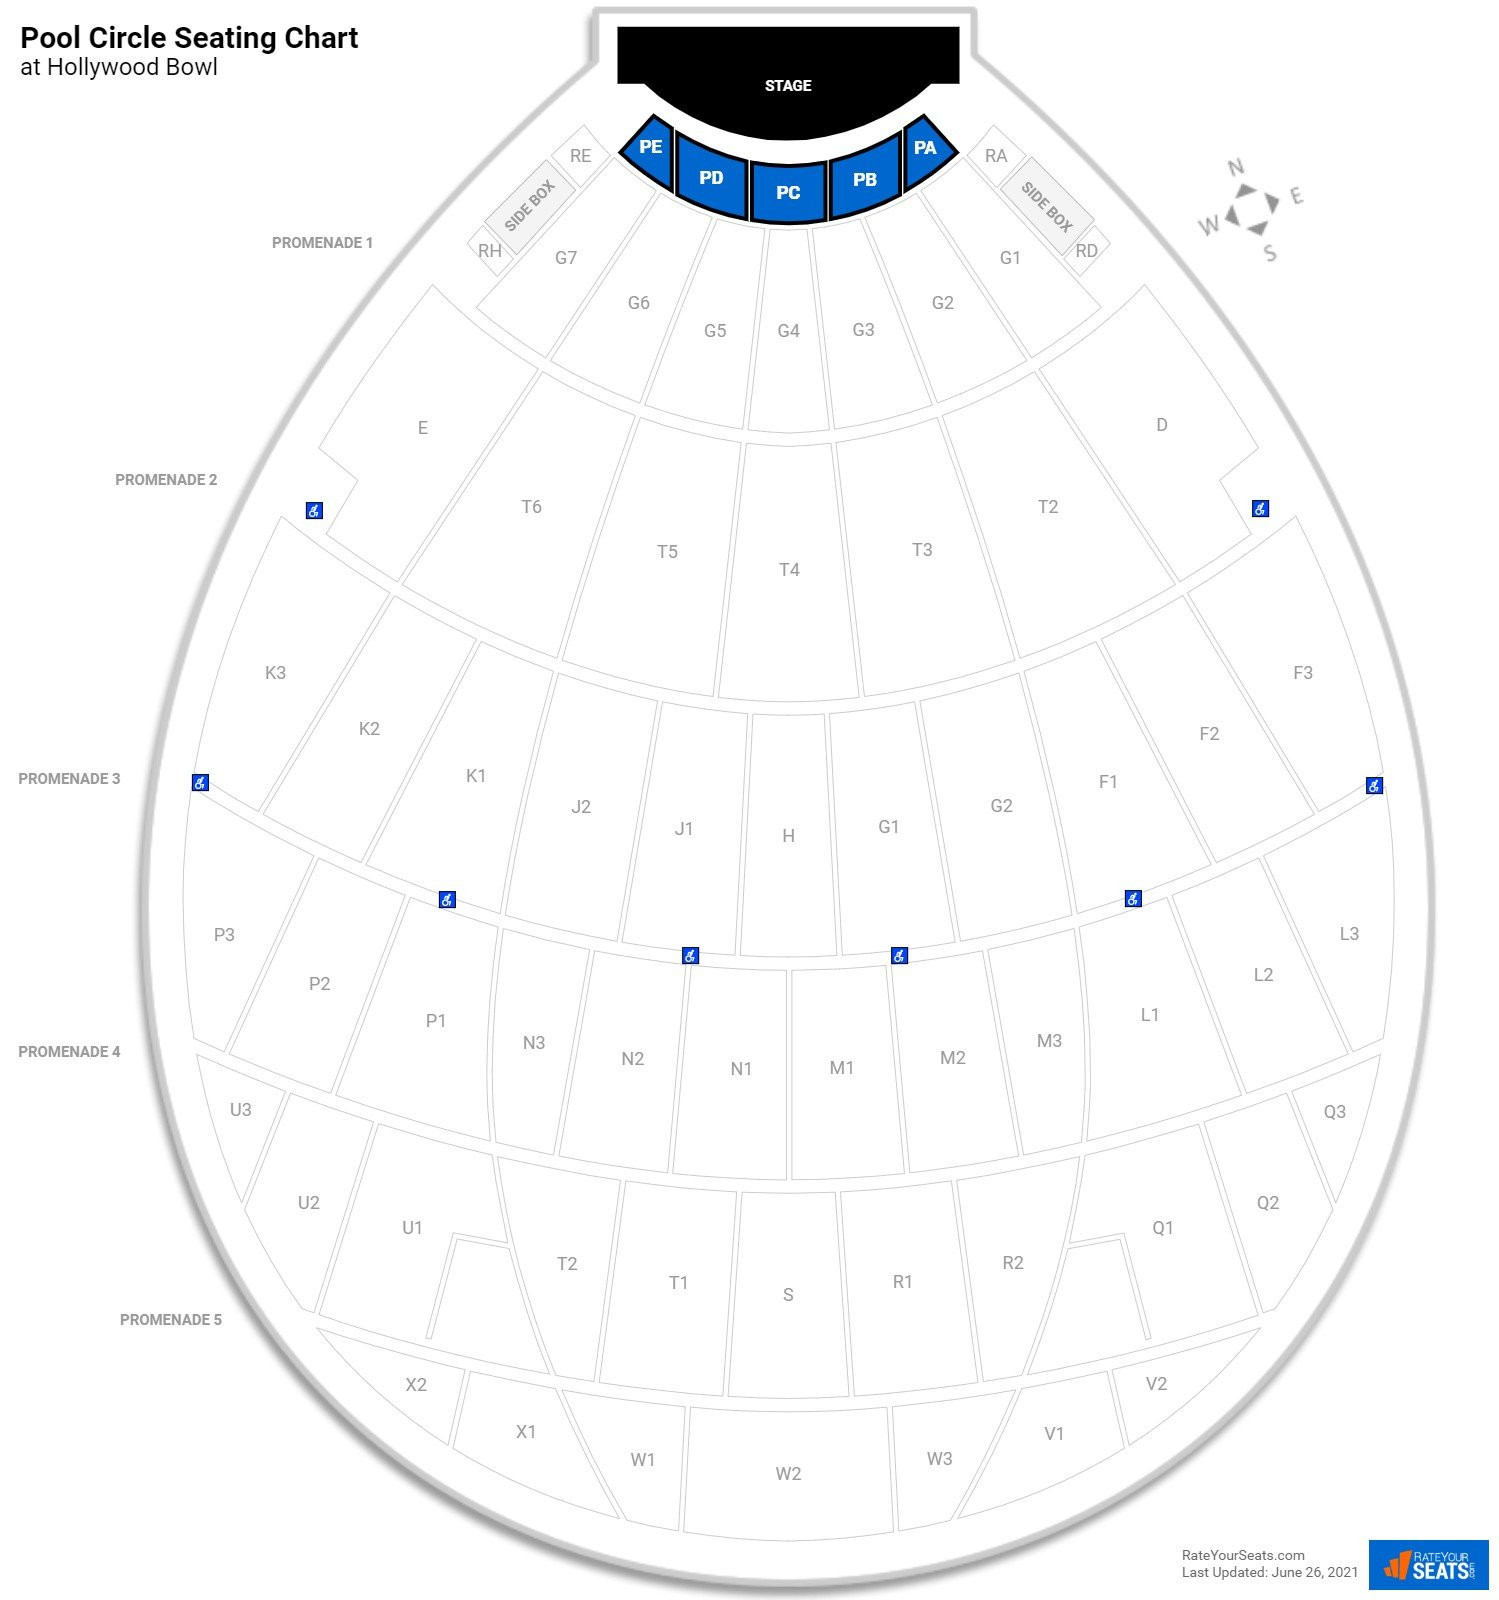 Hollywood Bowl Pool Circle Concert Seating Rateyourseats Com